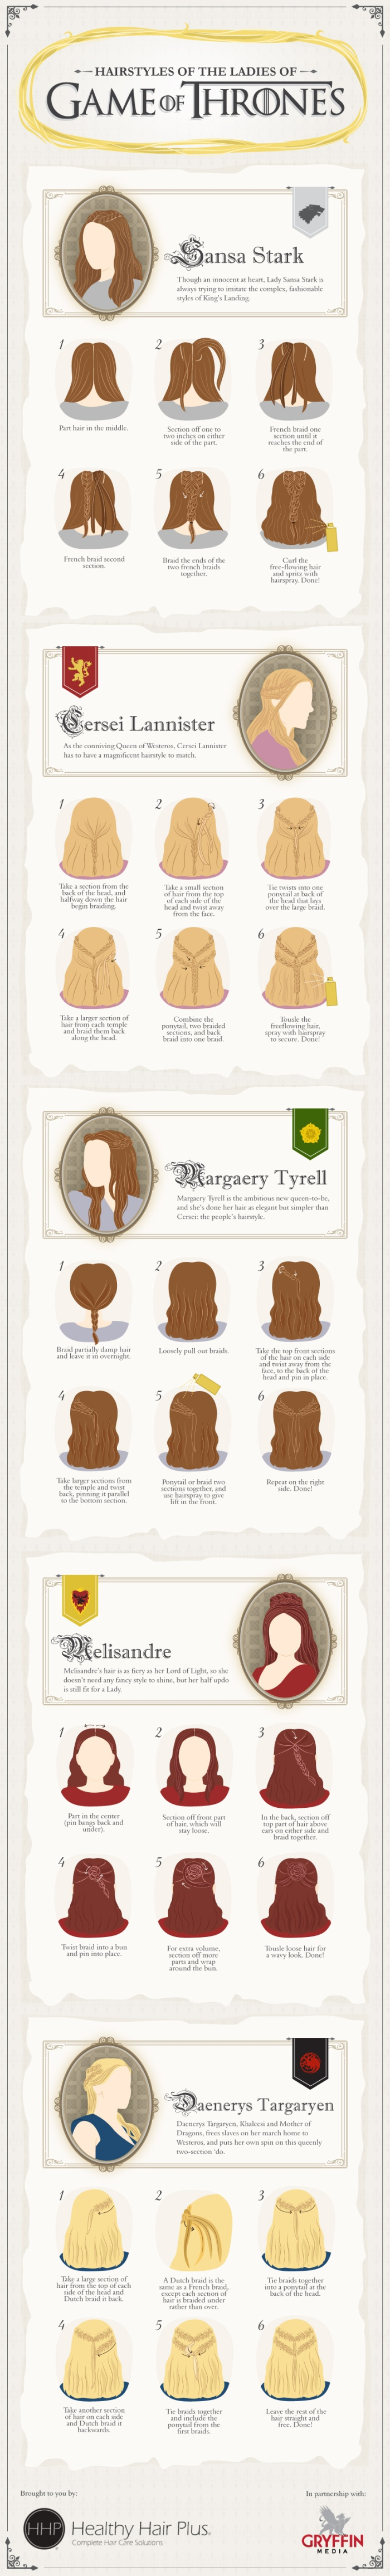 gameofthroneshair